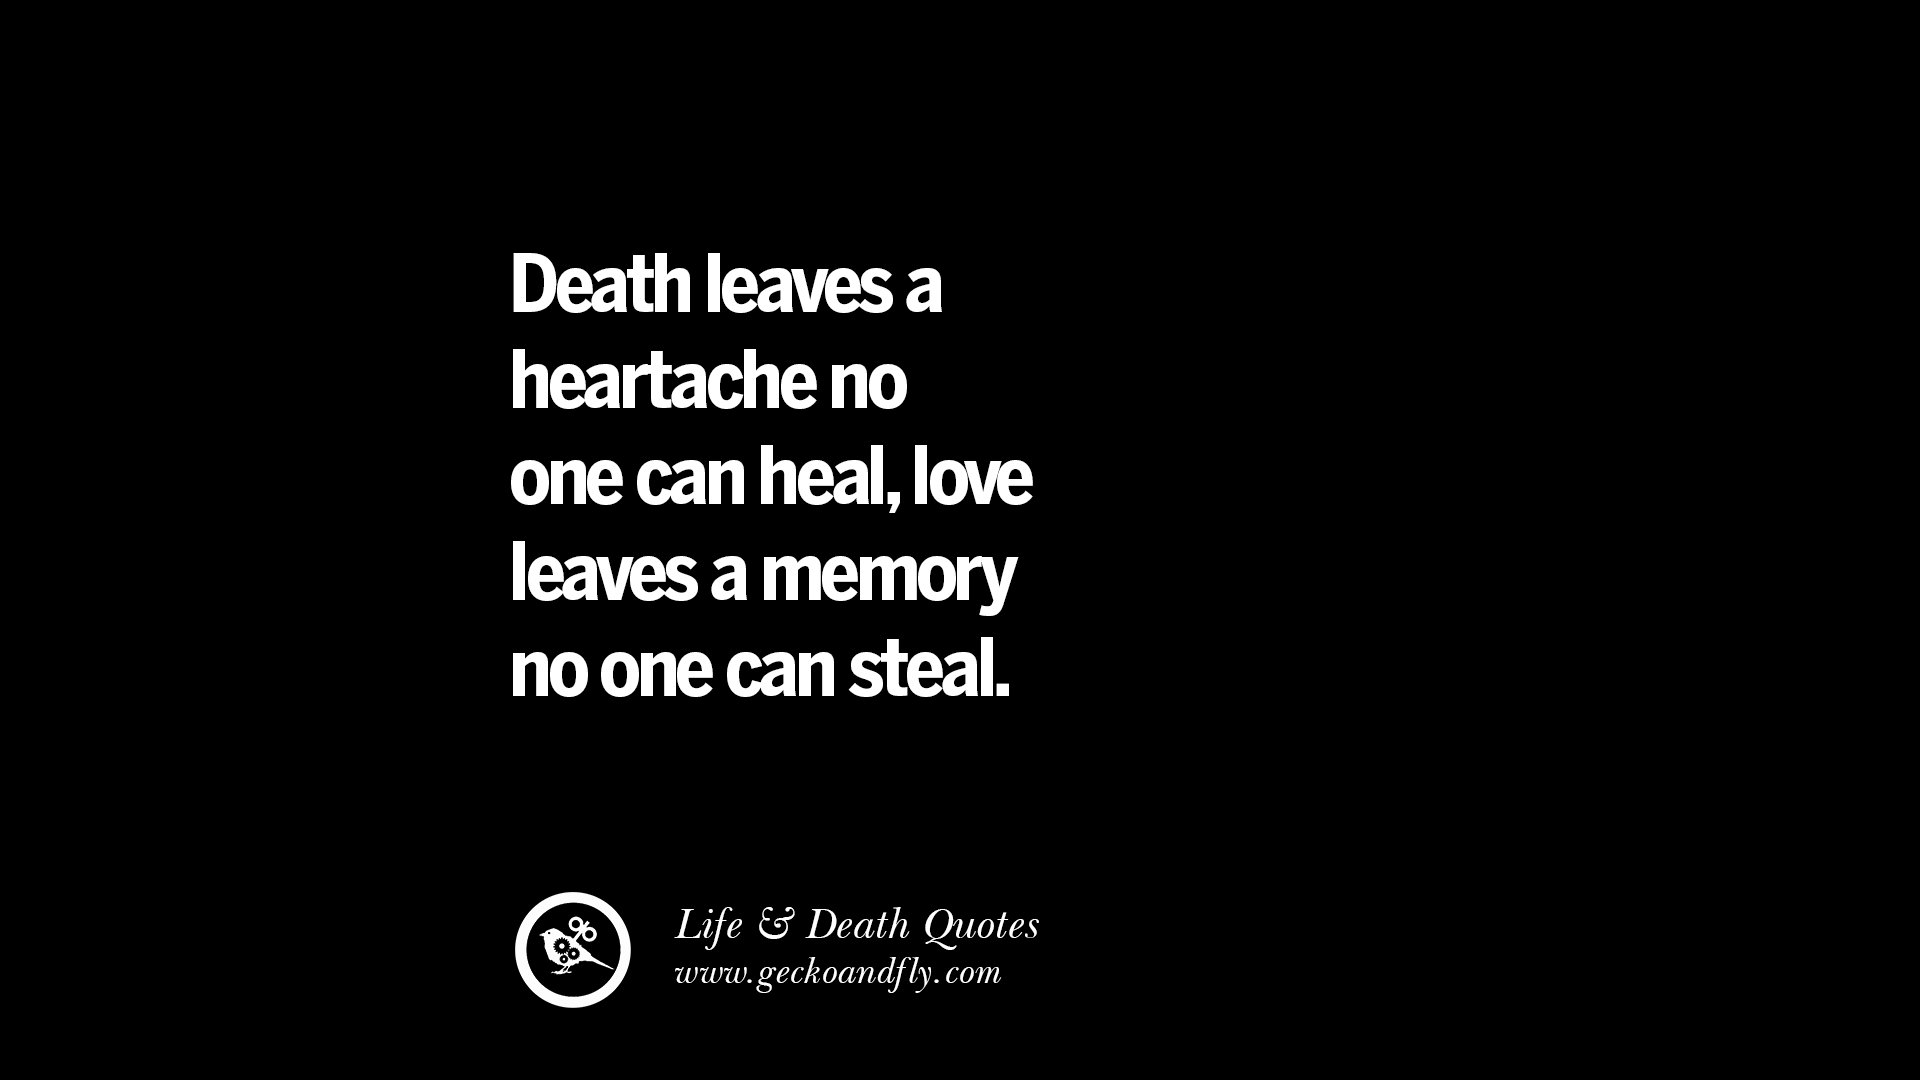 Quotes About Loss Of A Loved One 20 Inspirational Quotes On Life Death And Losing Someone